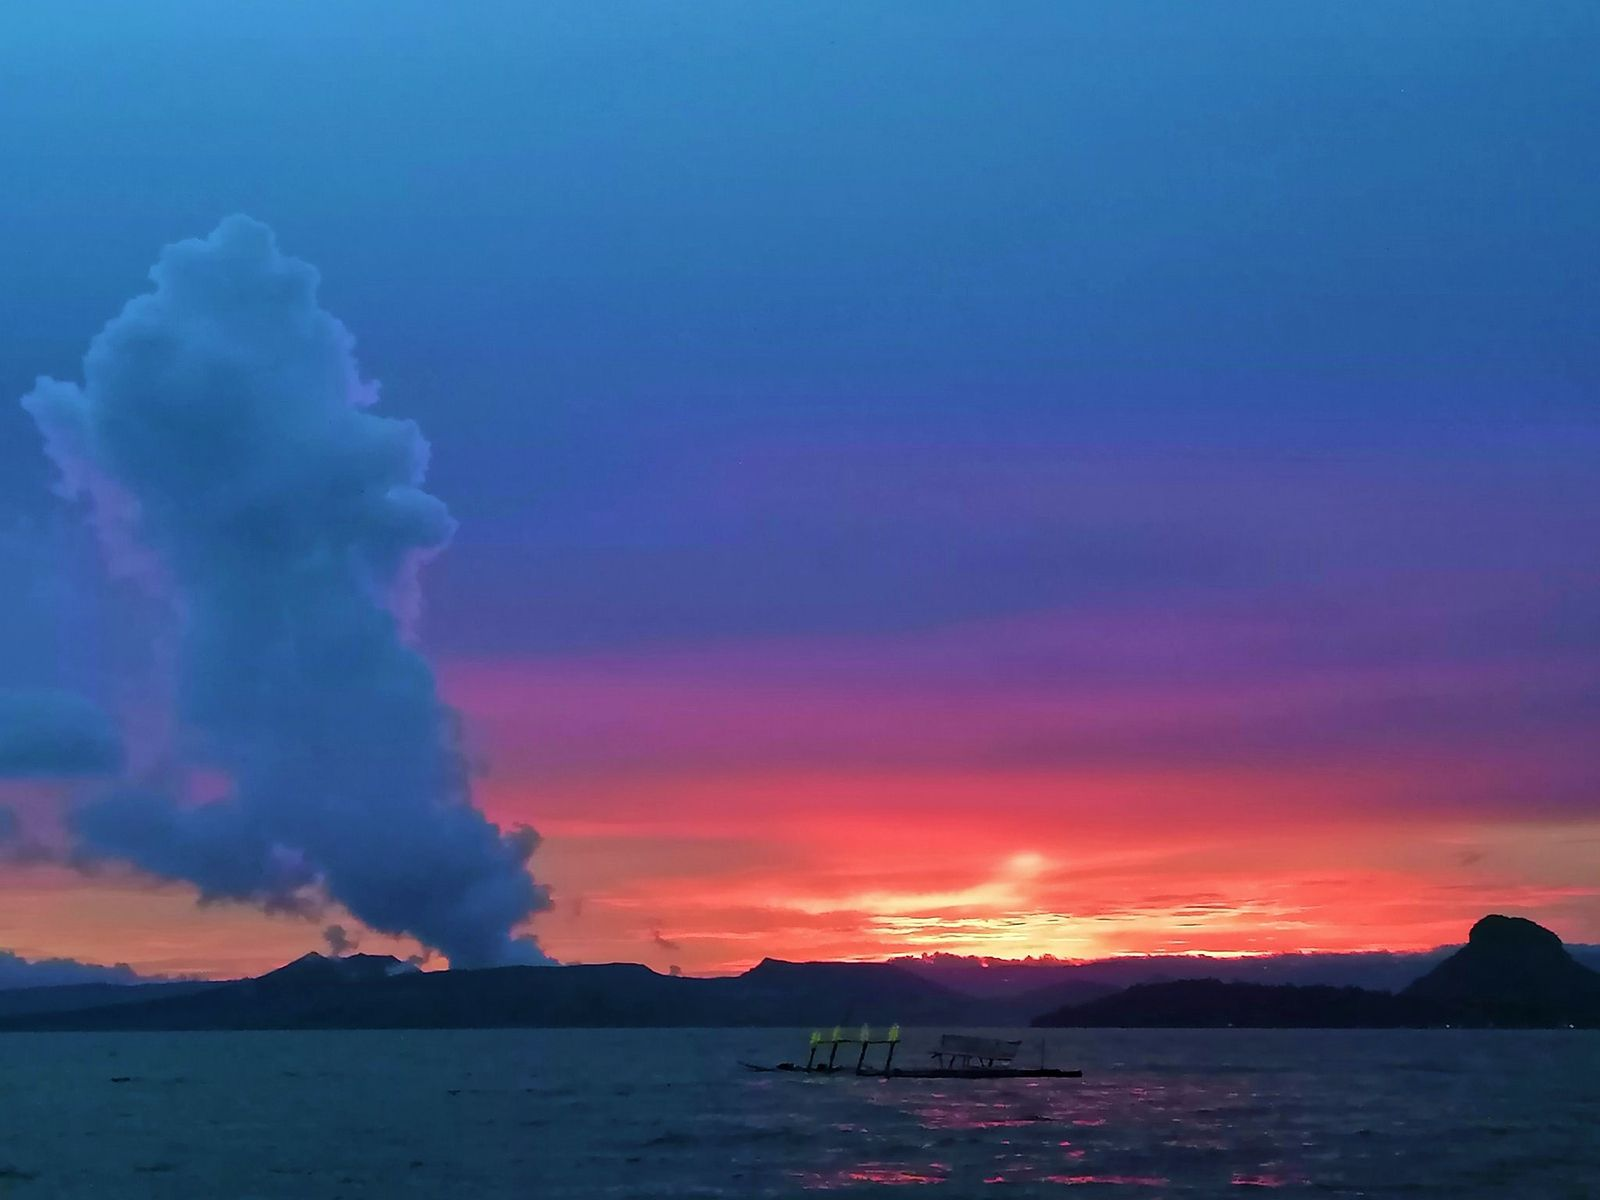 Taal - gas and steam plume - photo Paleny Paleny 05.09.2021